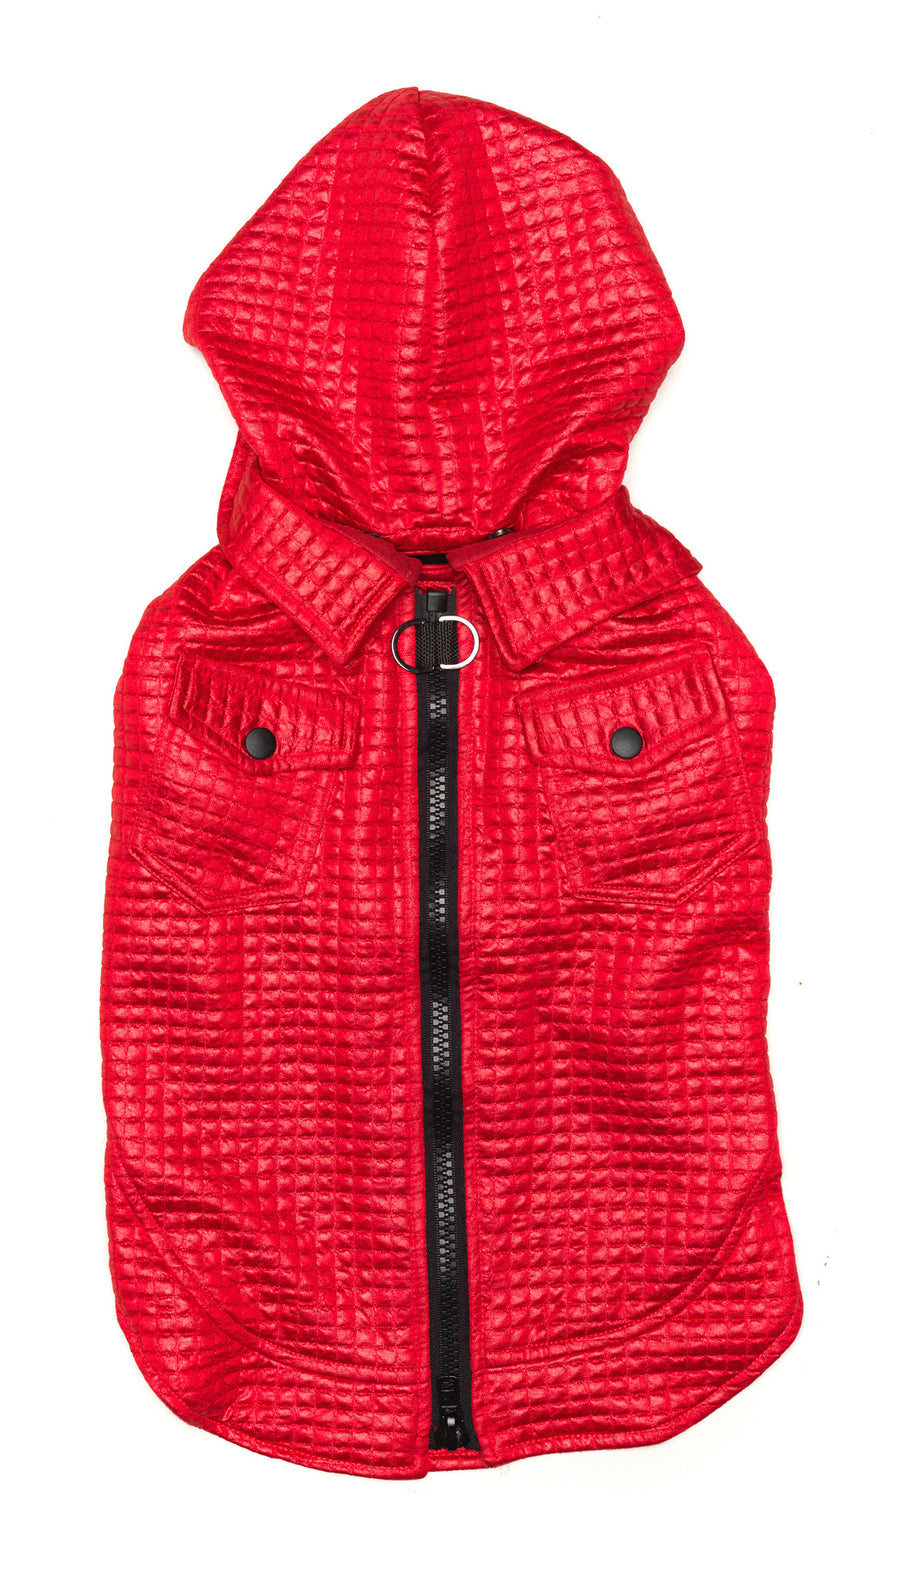 Red Dog Jacket | Lil Rocknhood Dog Coat | Fashion & Style